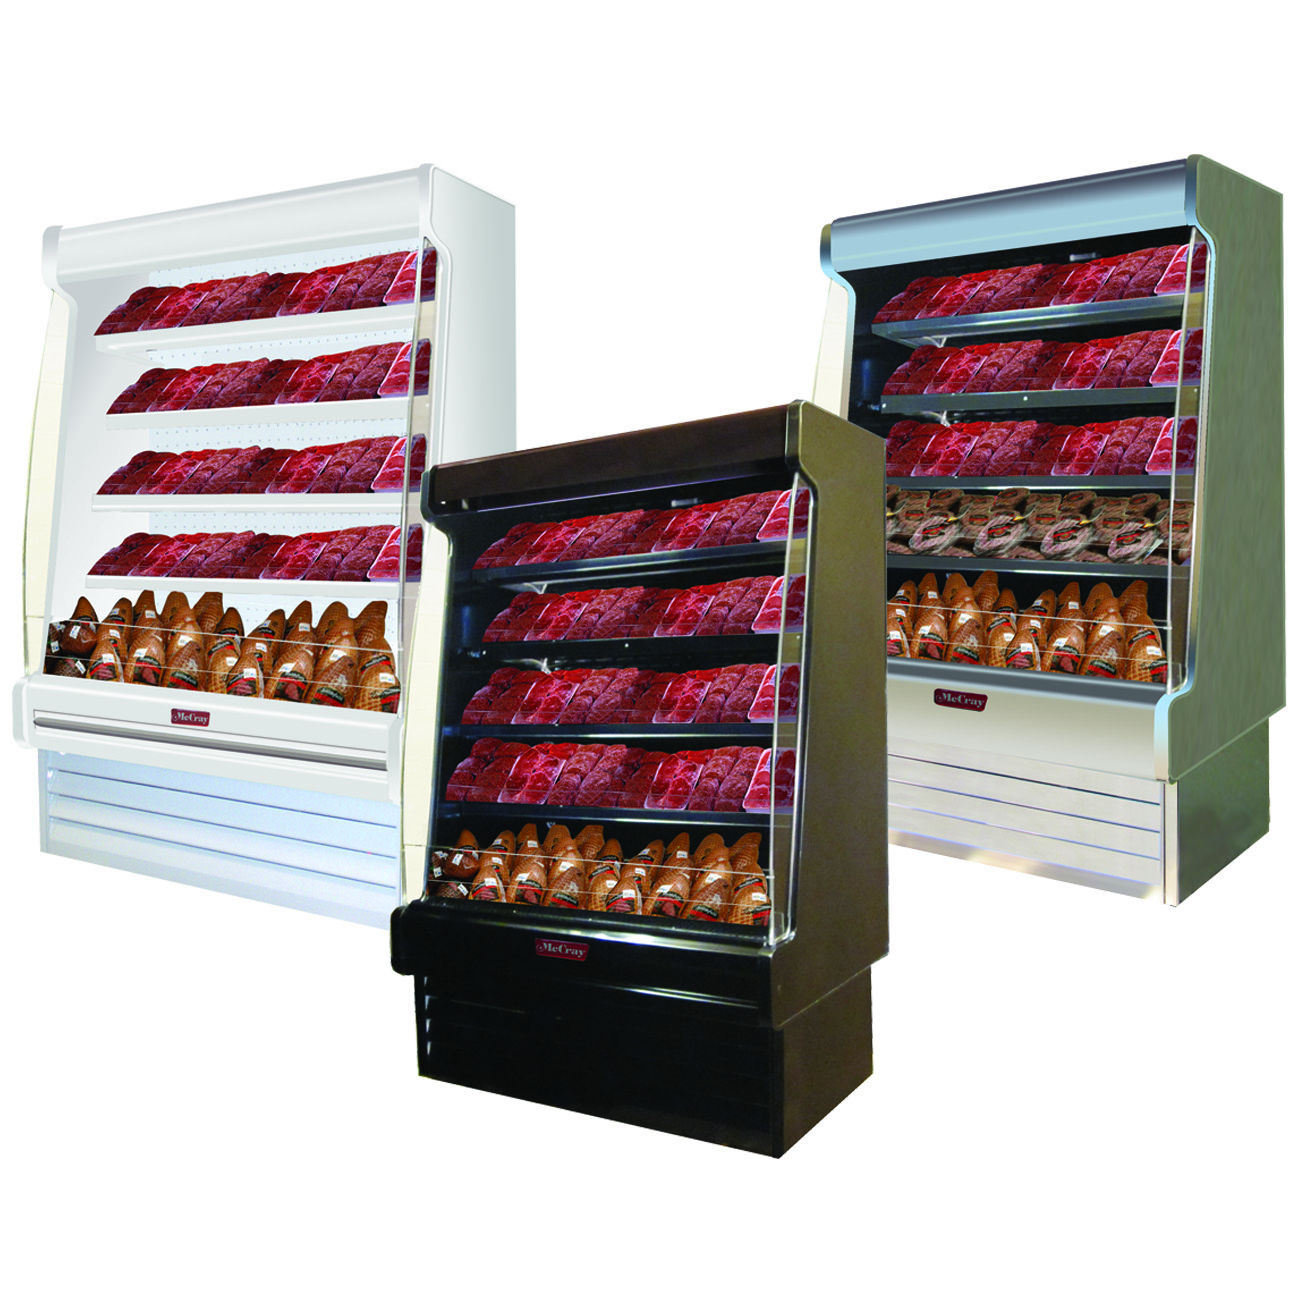 Howard-McCray SC-OM35E-5S-S-LED merchandiser, open refrigerated display